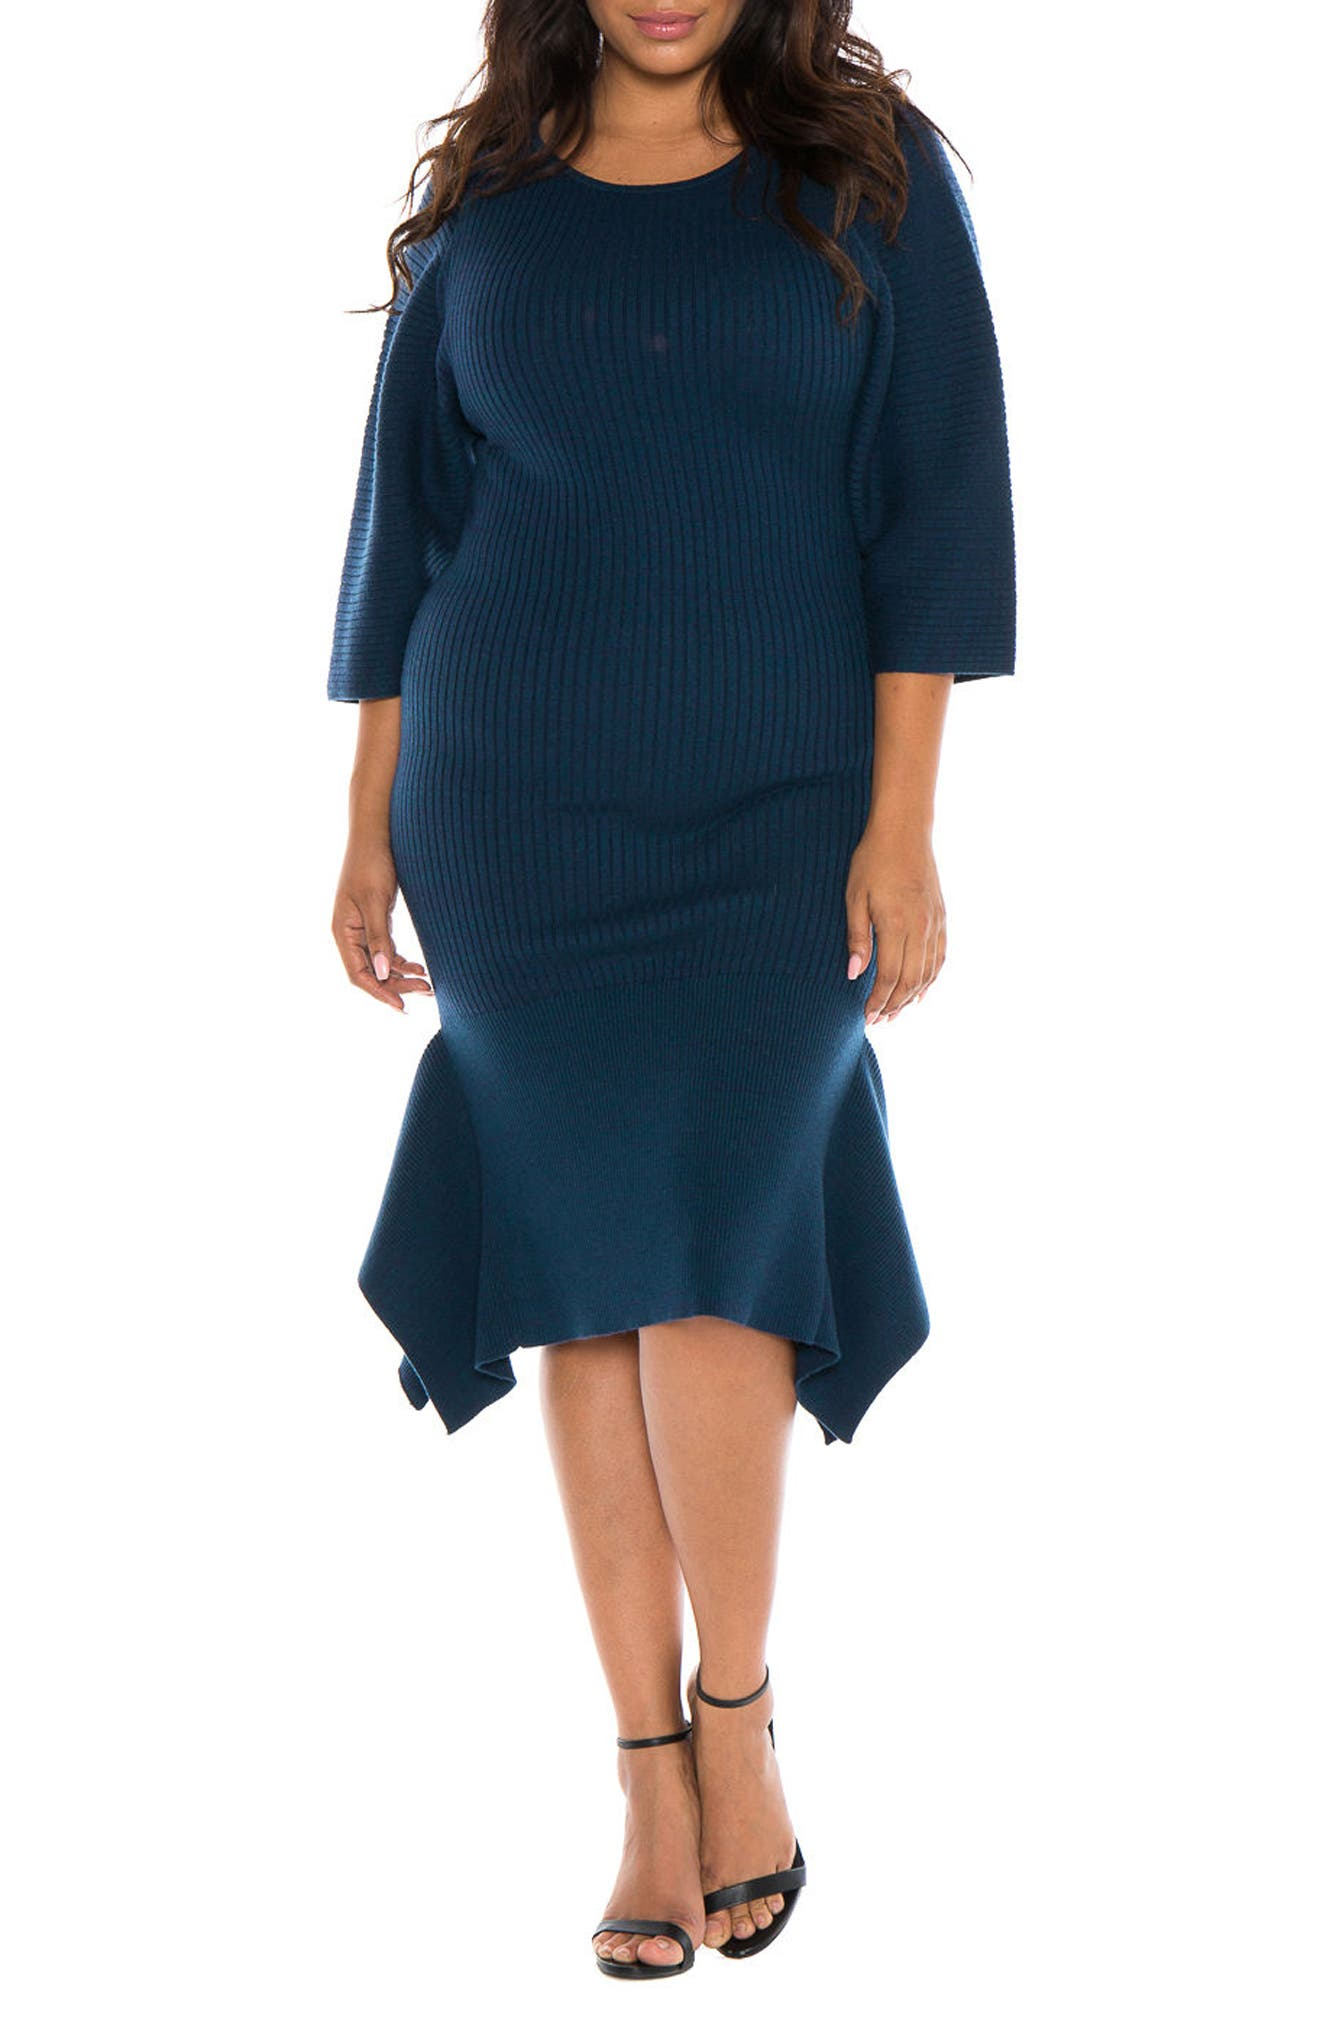 Alternate Image 1 Selected - SLINK Jeans Handkerchief Hem Sweater Dress (Plus Size)